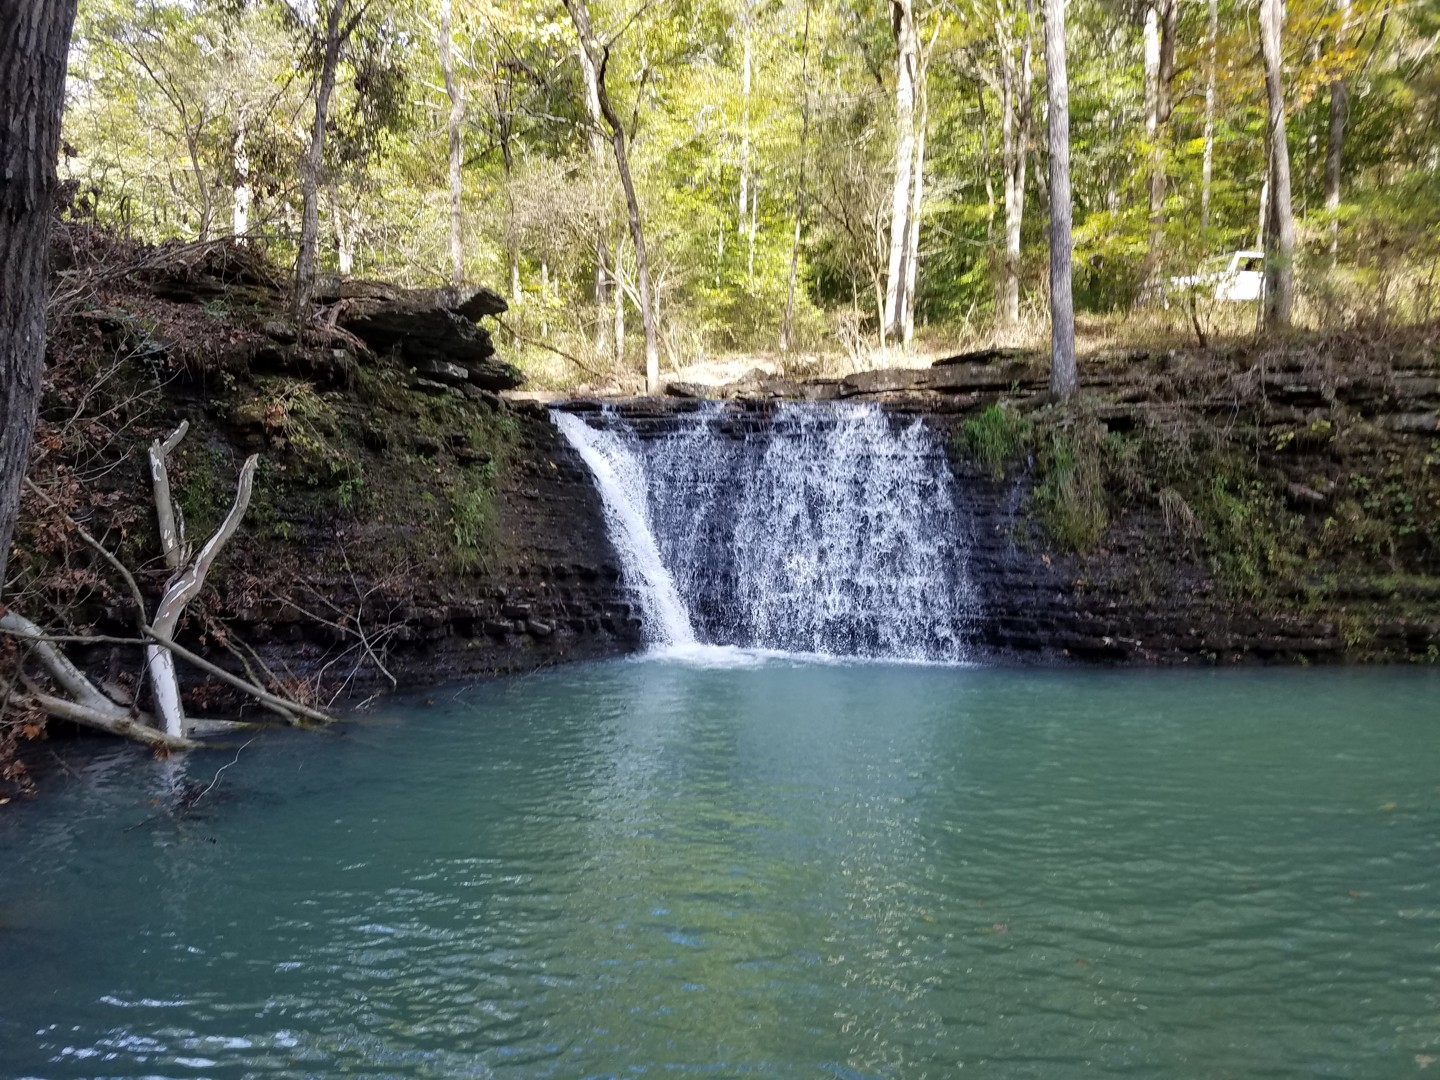 Trail Review: Creek Road - Spainhour Falls